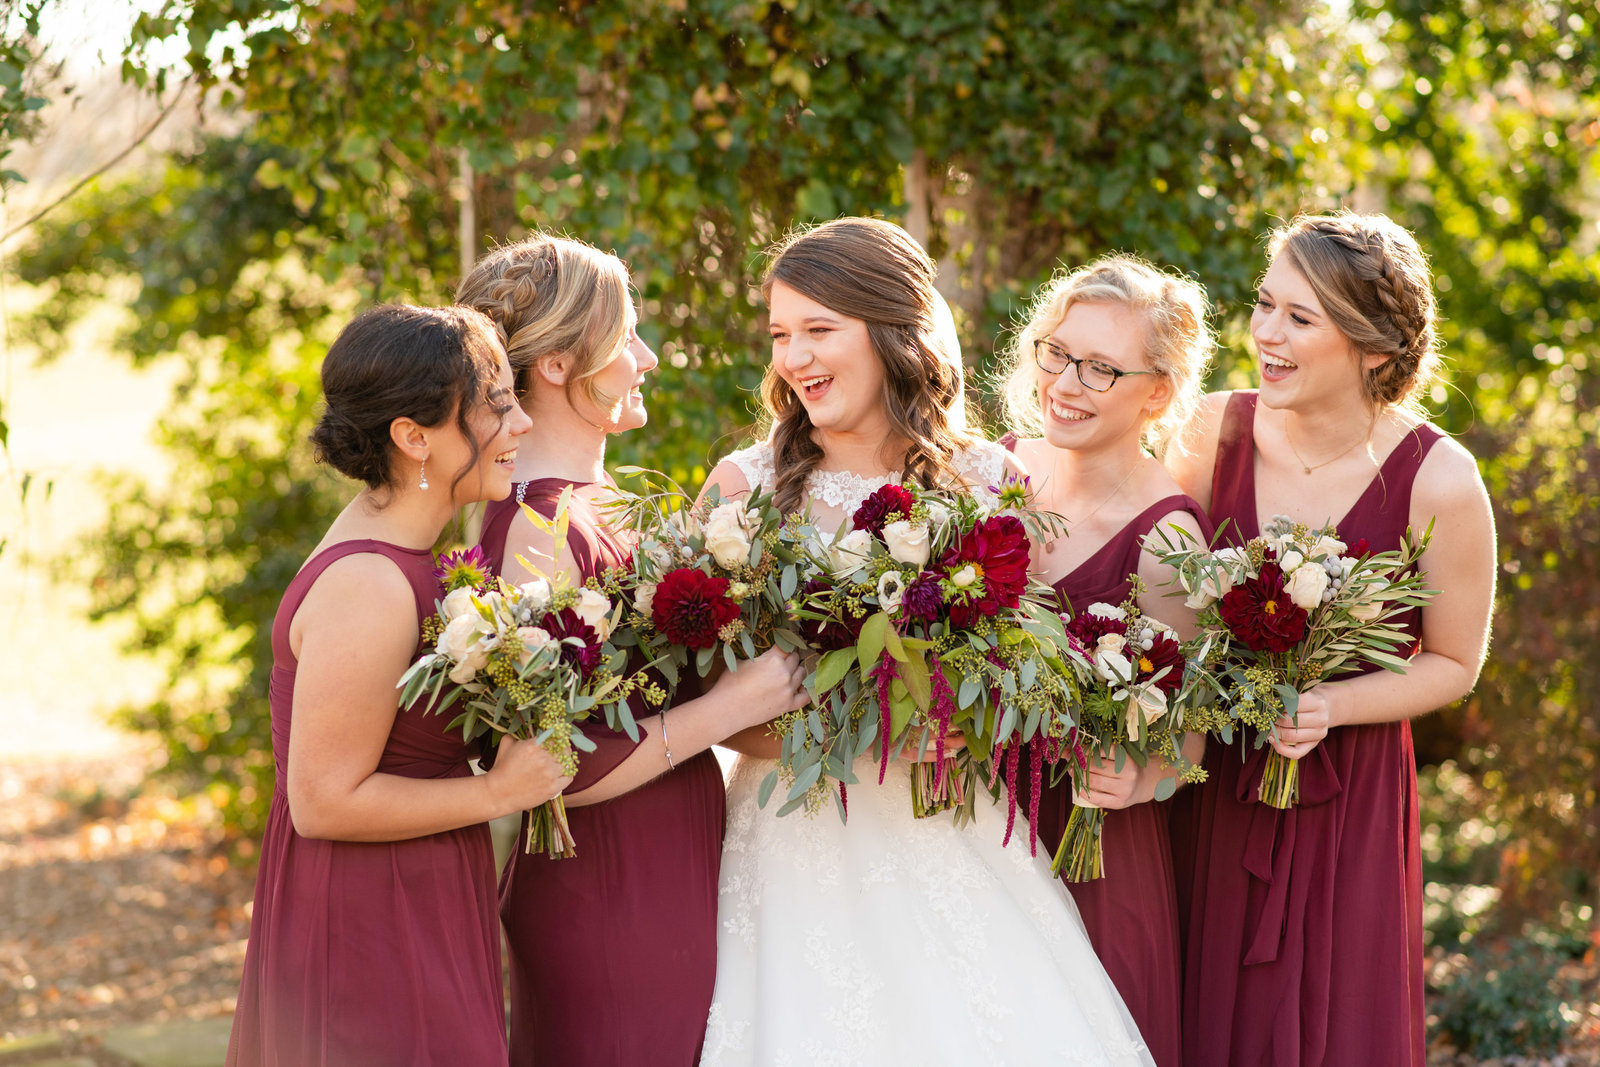 bride laughing with bridesmaids in burgundy dresses winter wedding